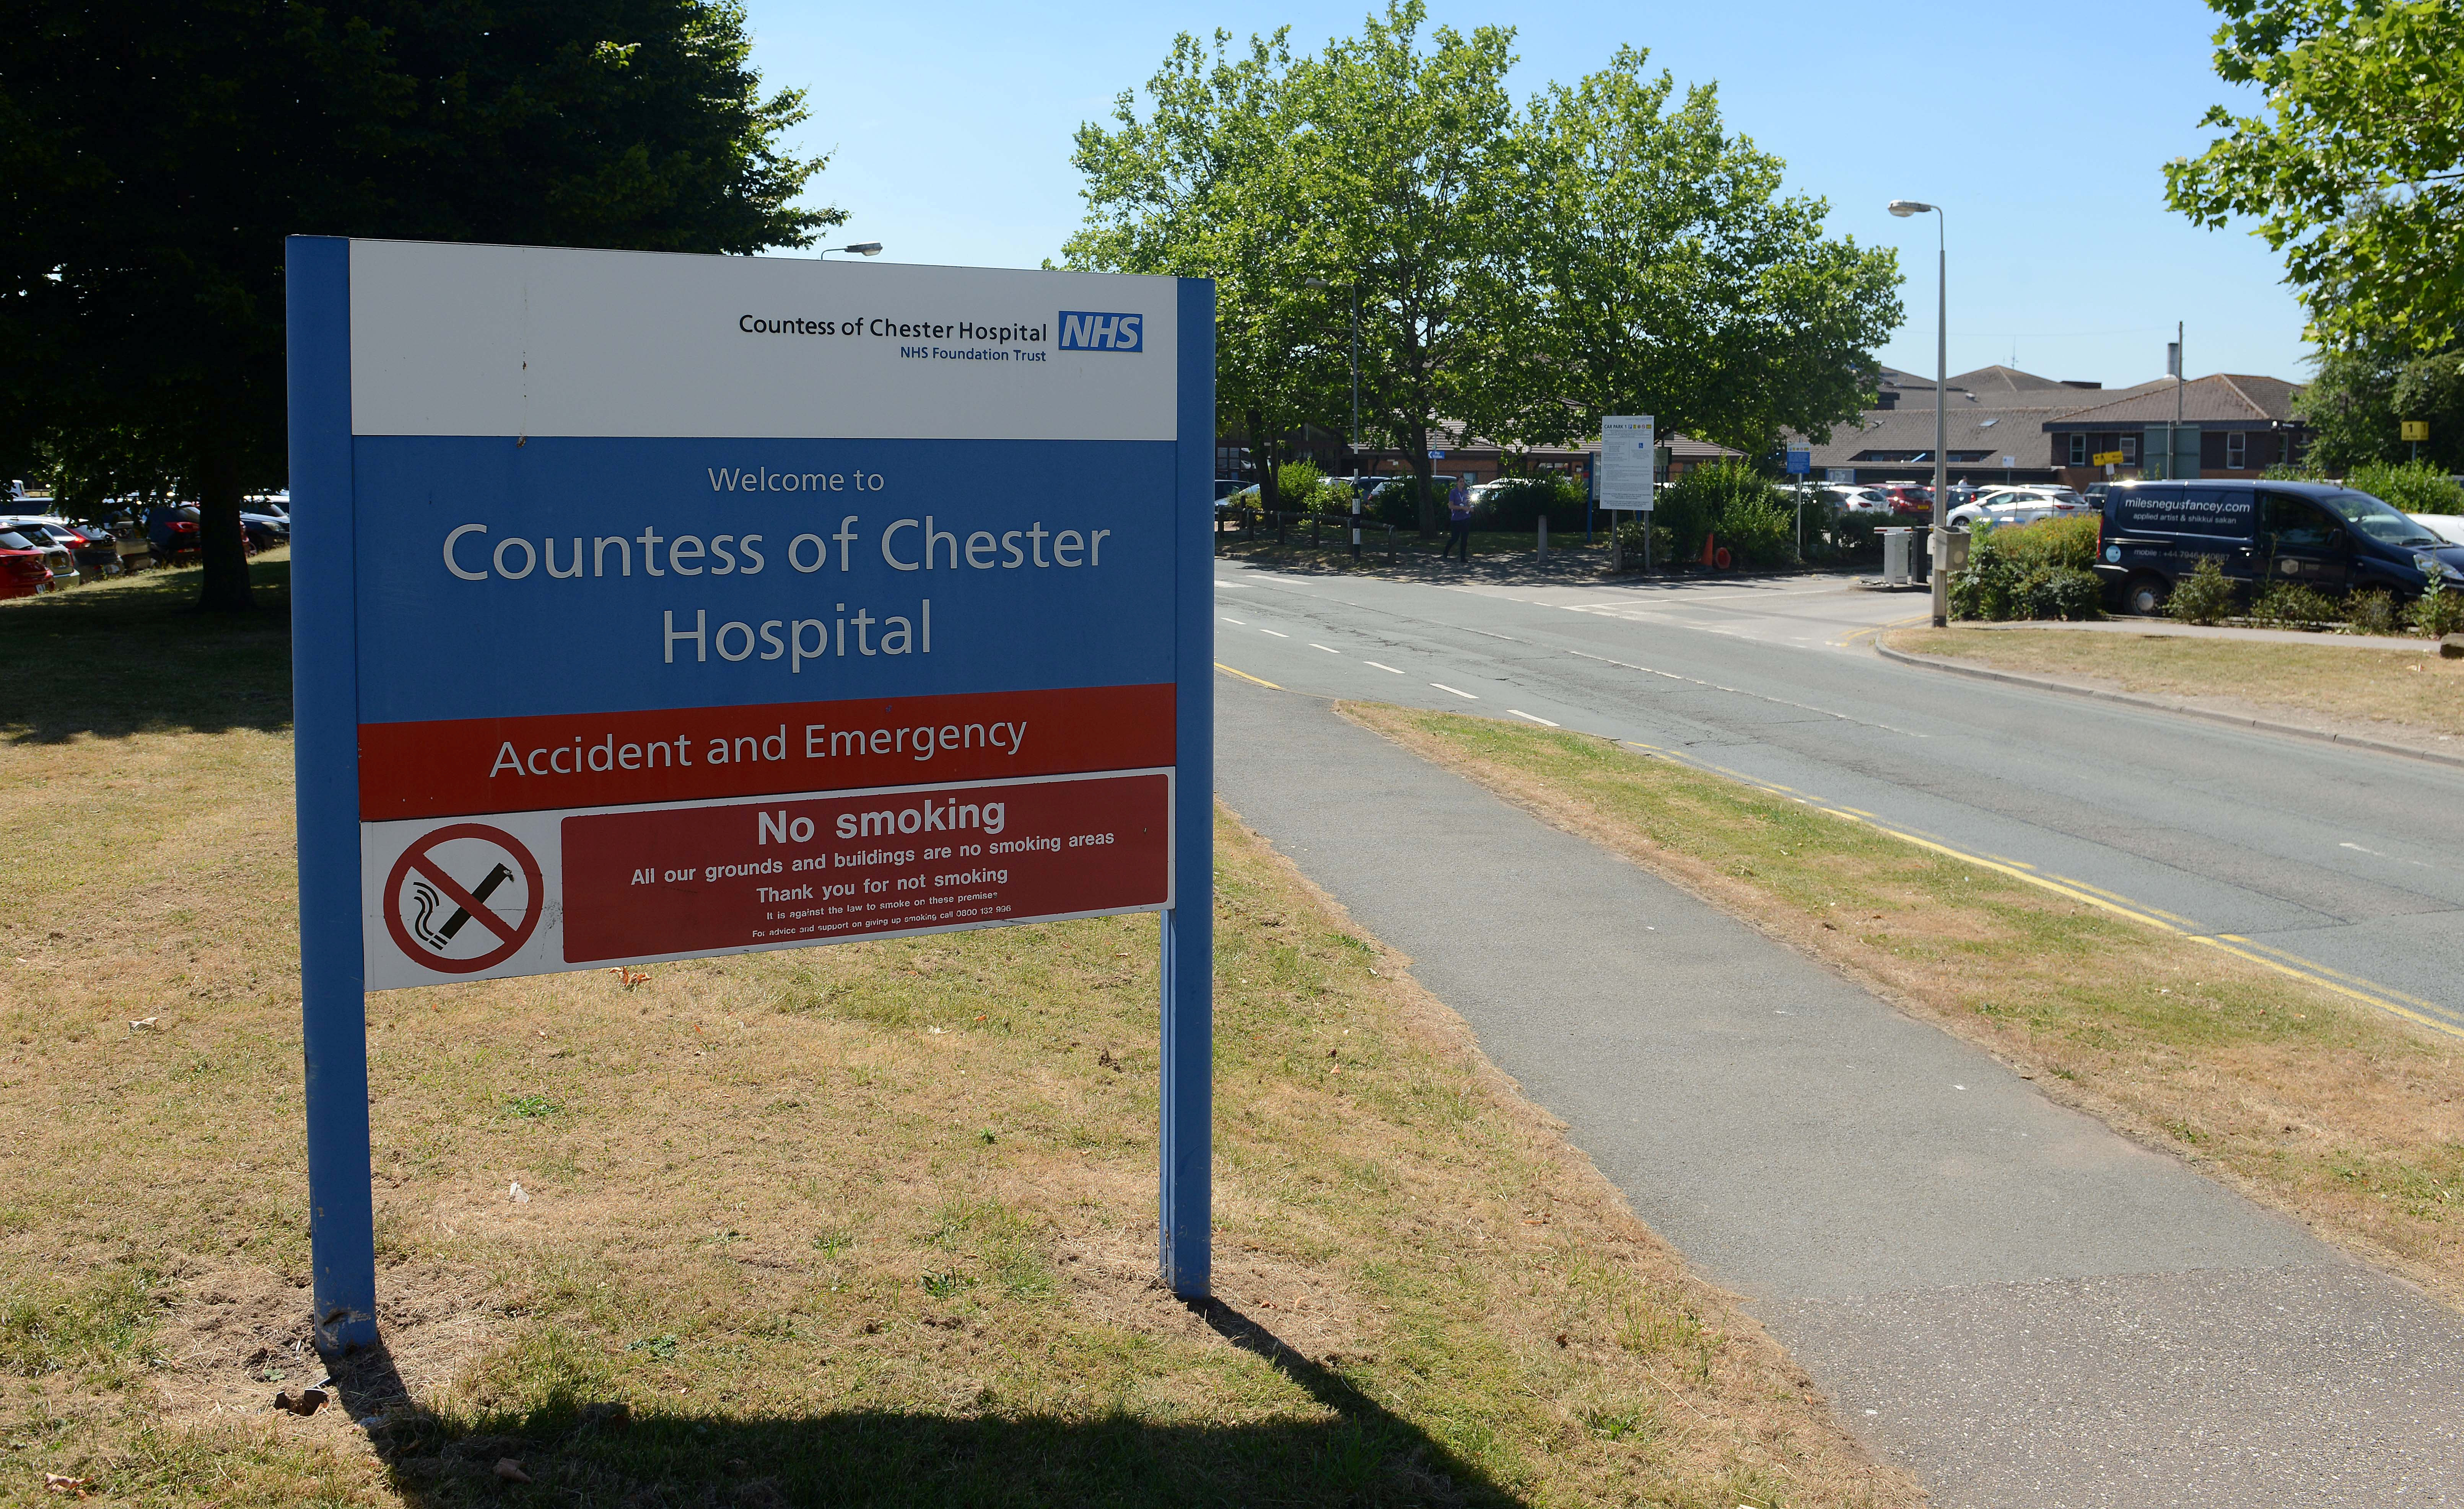 An investigation into baby deaths at Countess of Chester Hospital was launched in 2017. (SWNS)